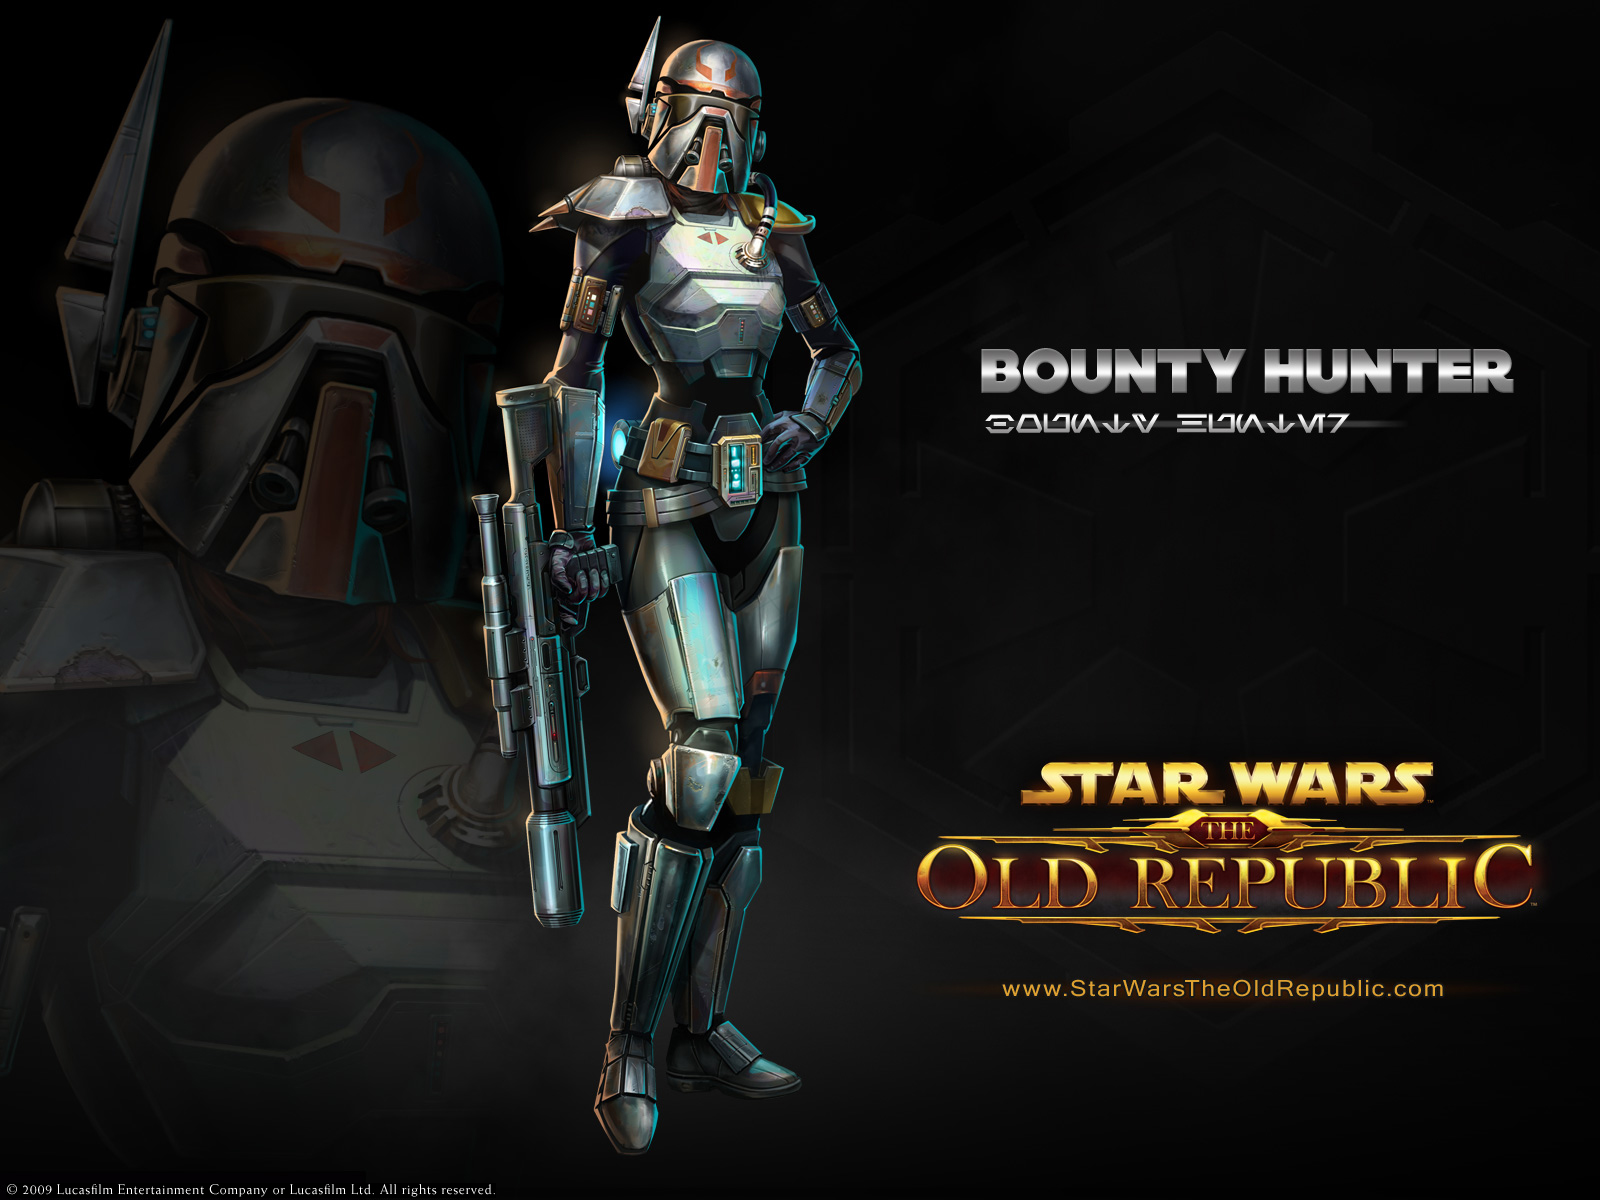 SWTOR Wallpapers Star Wars Wallpapers Star Wars TOR Fever SWTOR 1600x1200